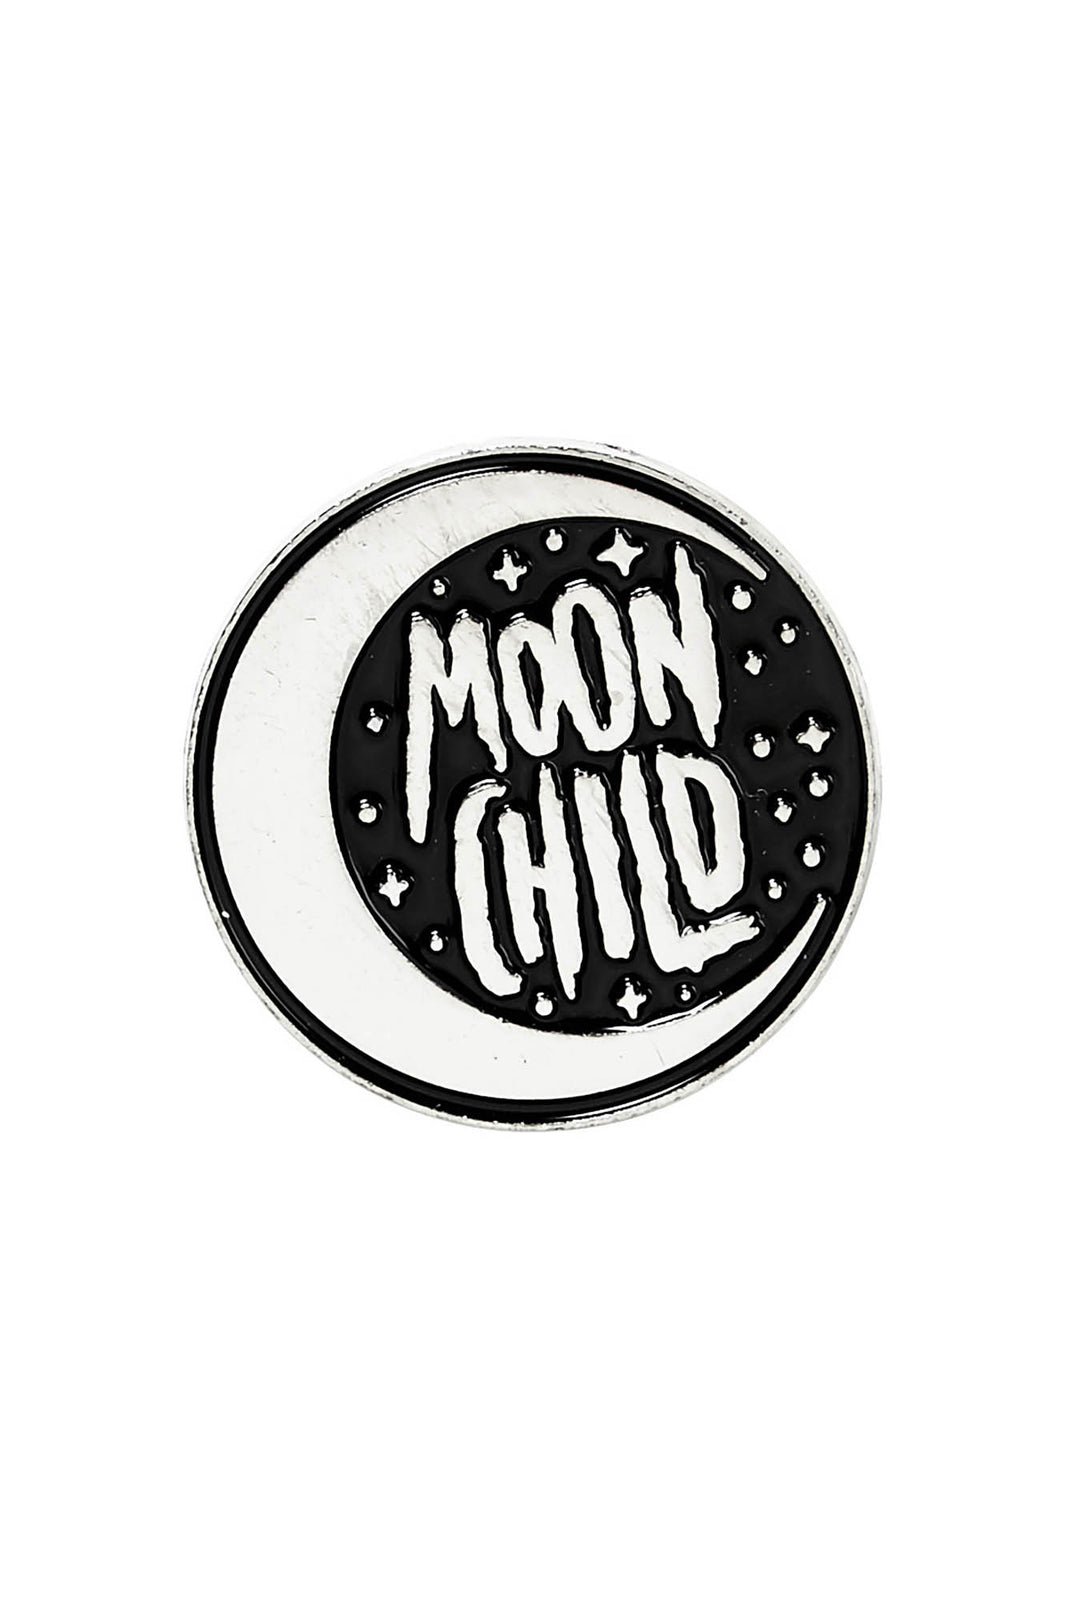 Moon Child Enamel Pin [B]